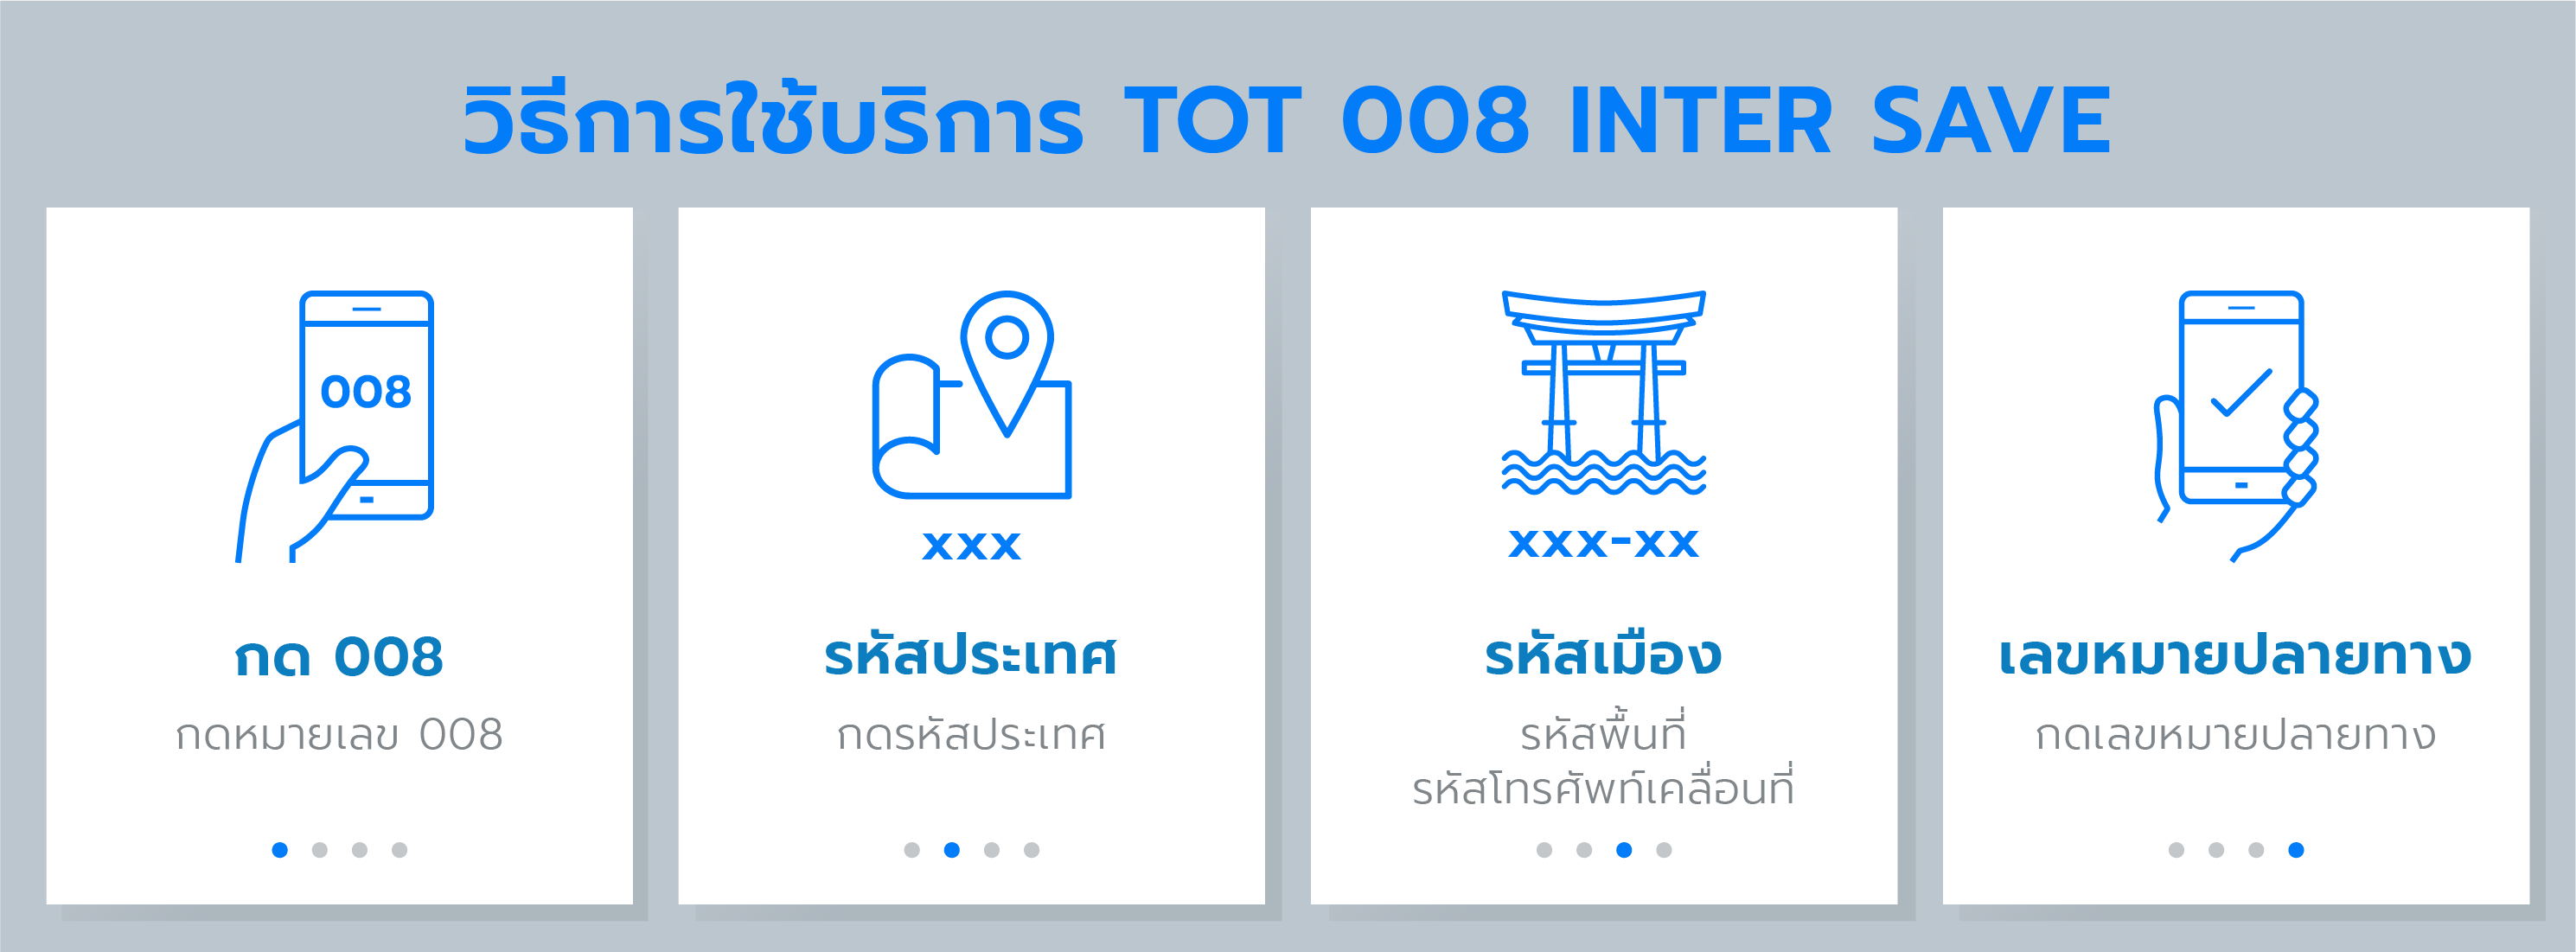 tot-contact-center-detail_teaser